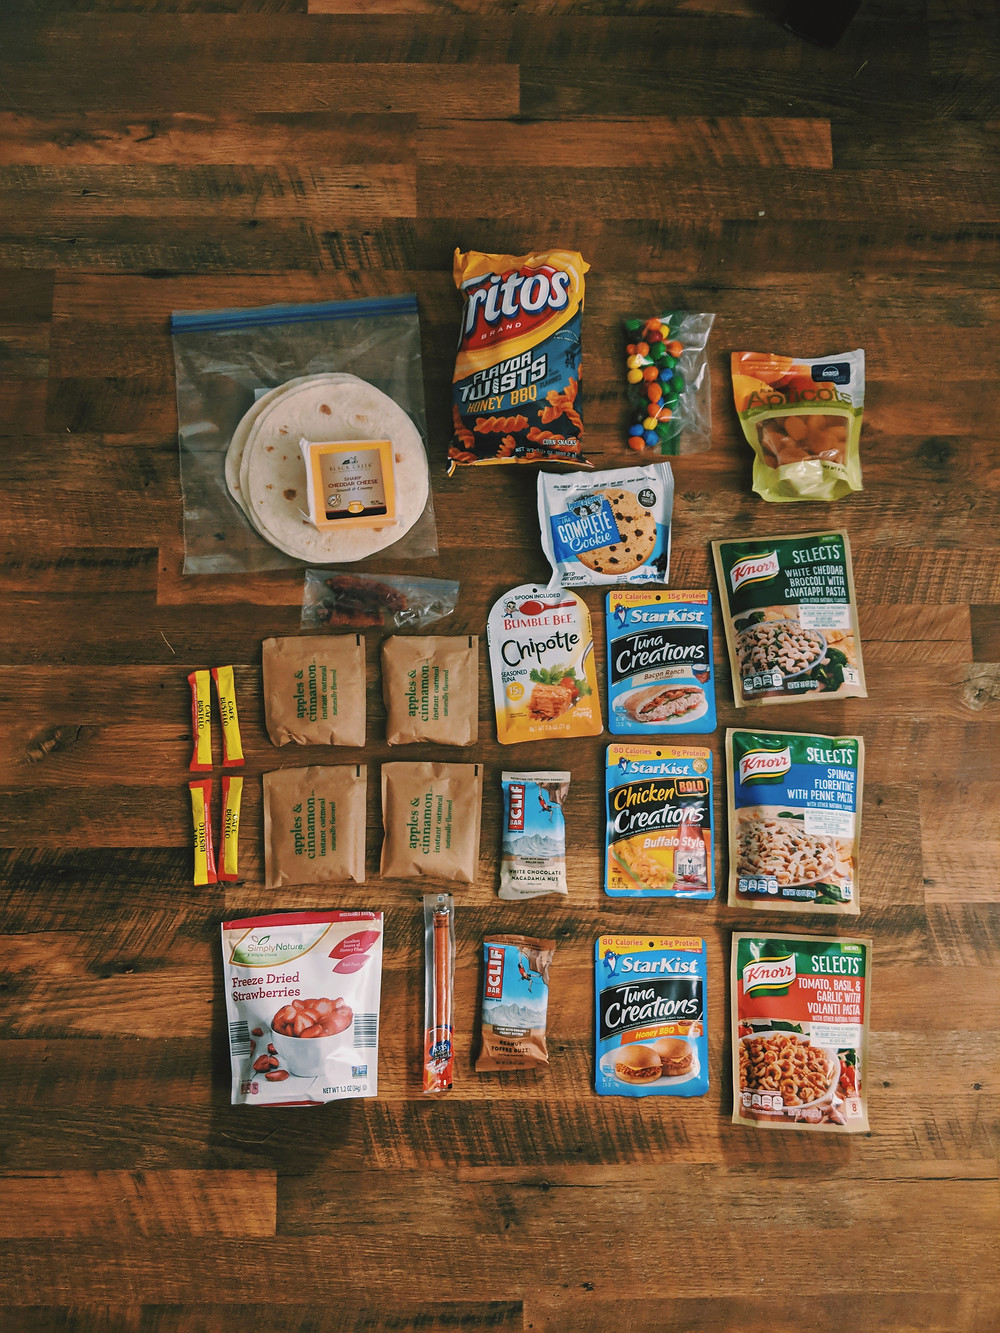 flaylay of food for 2.5 days of hiking